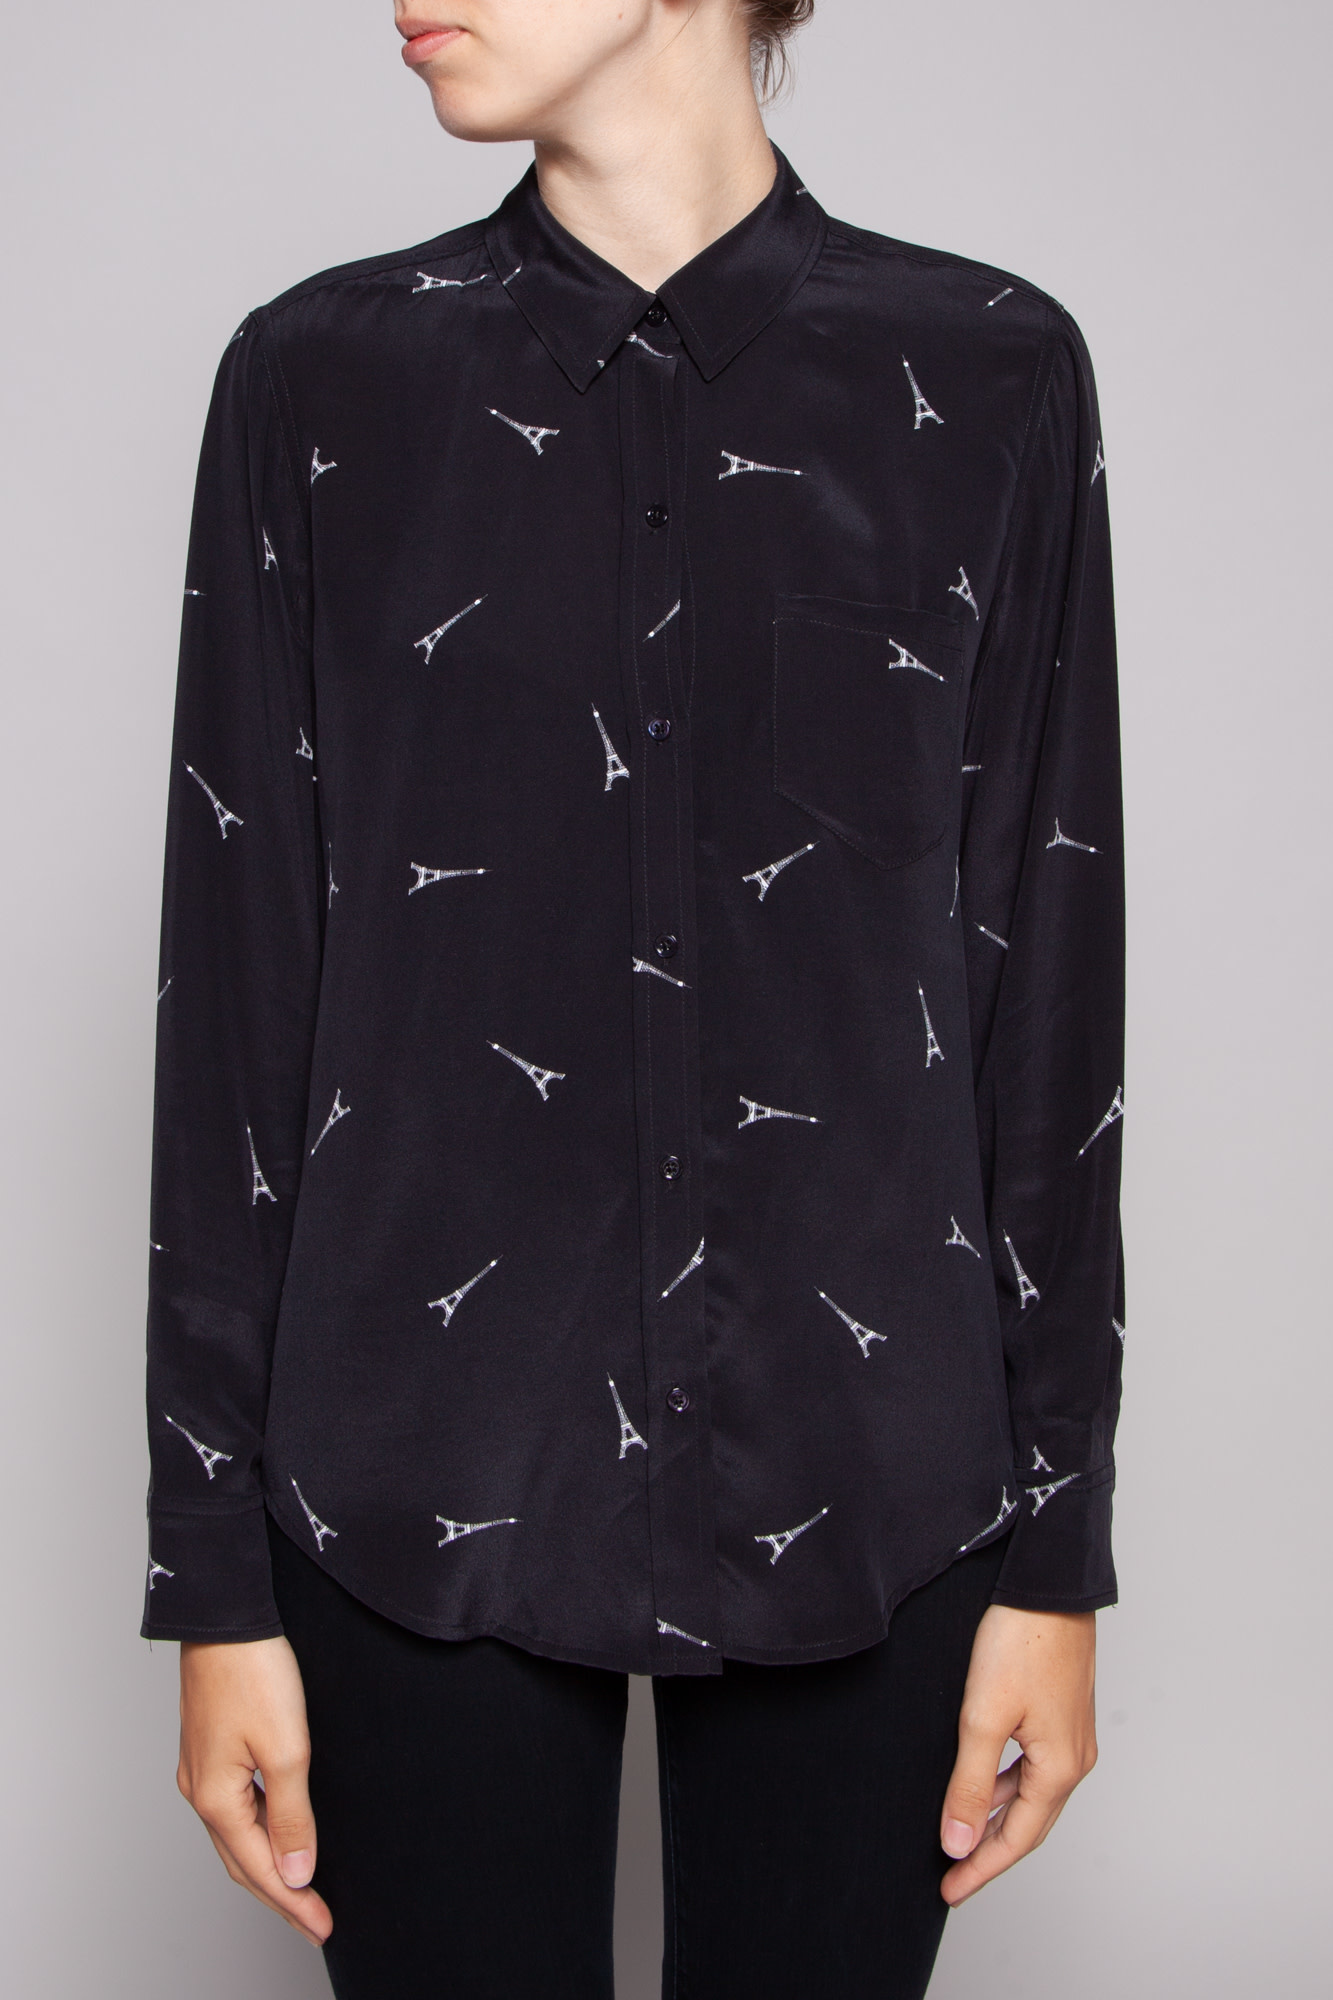 Rails BLACK SILK EIFFEL TOWER PRINT SHIRT - NEW WITH TAGS